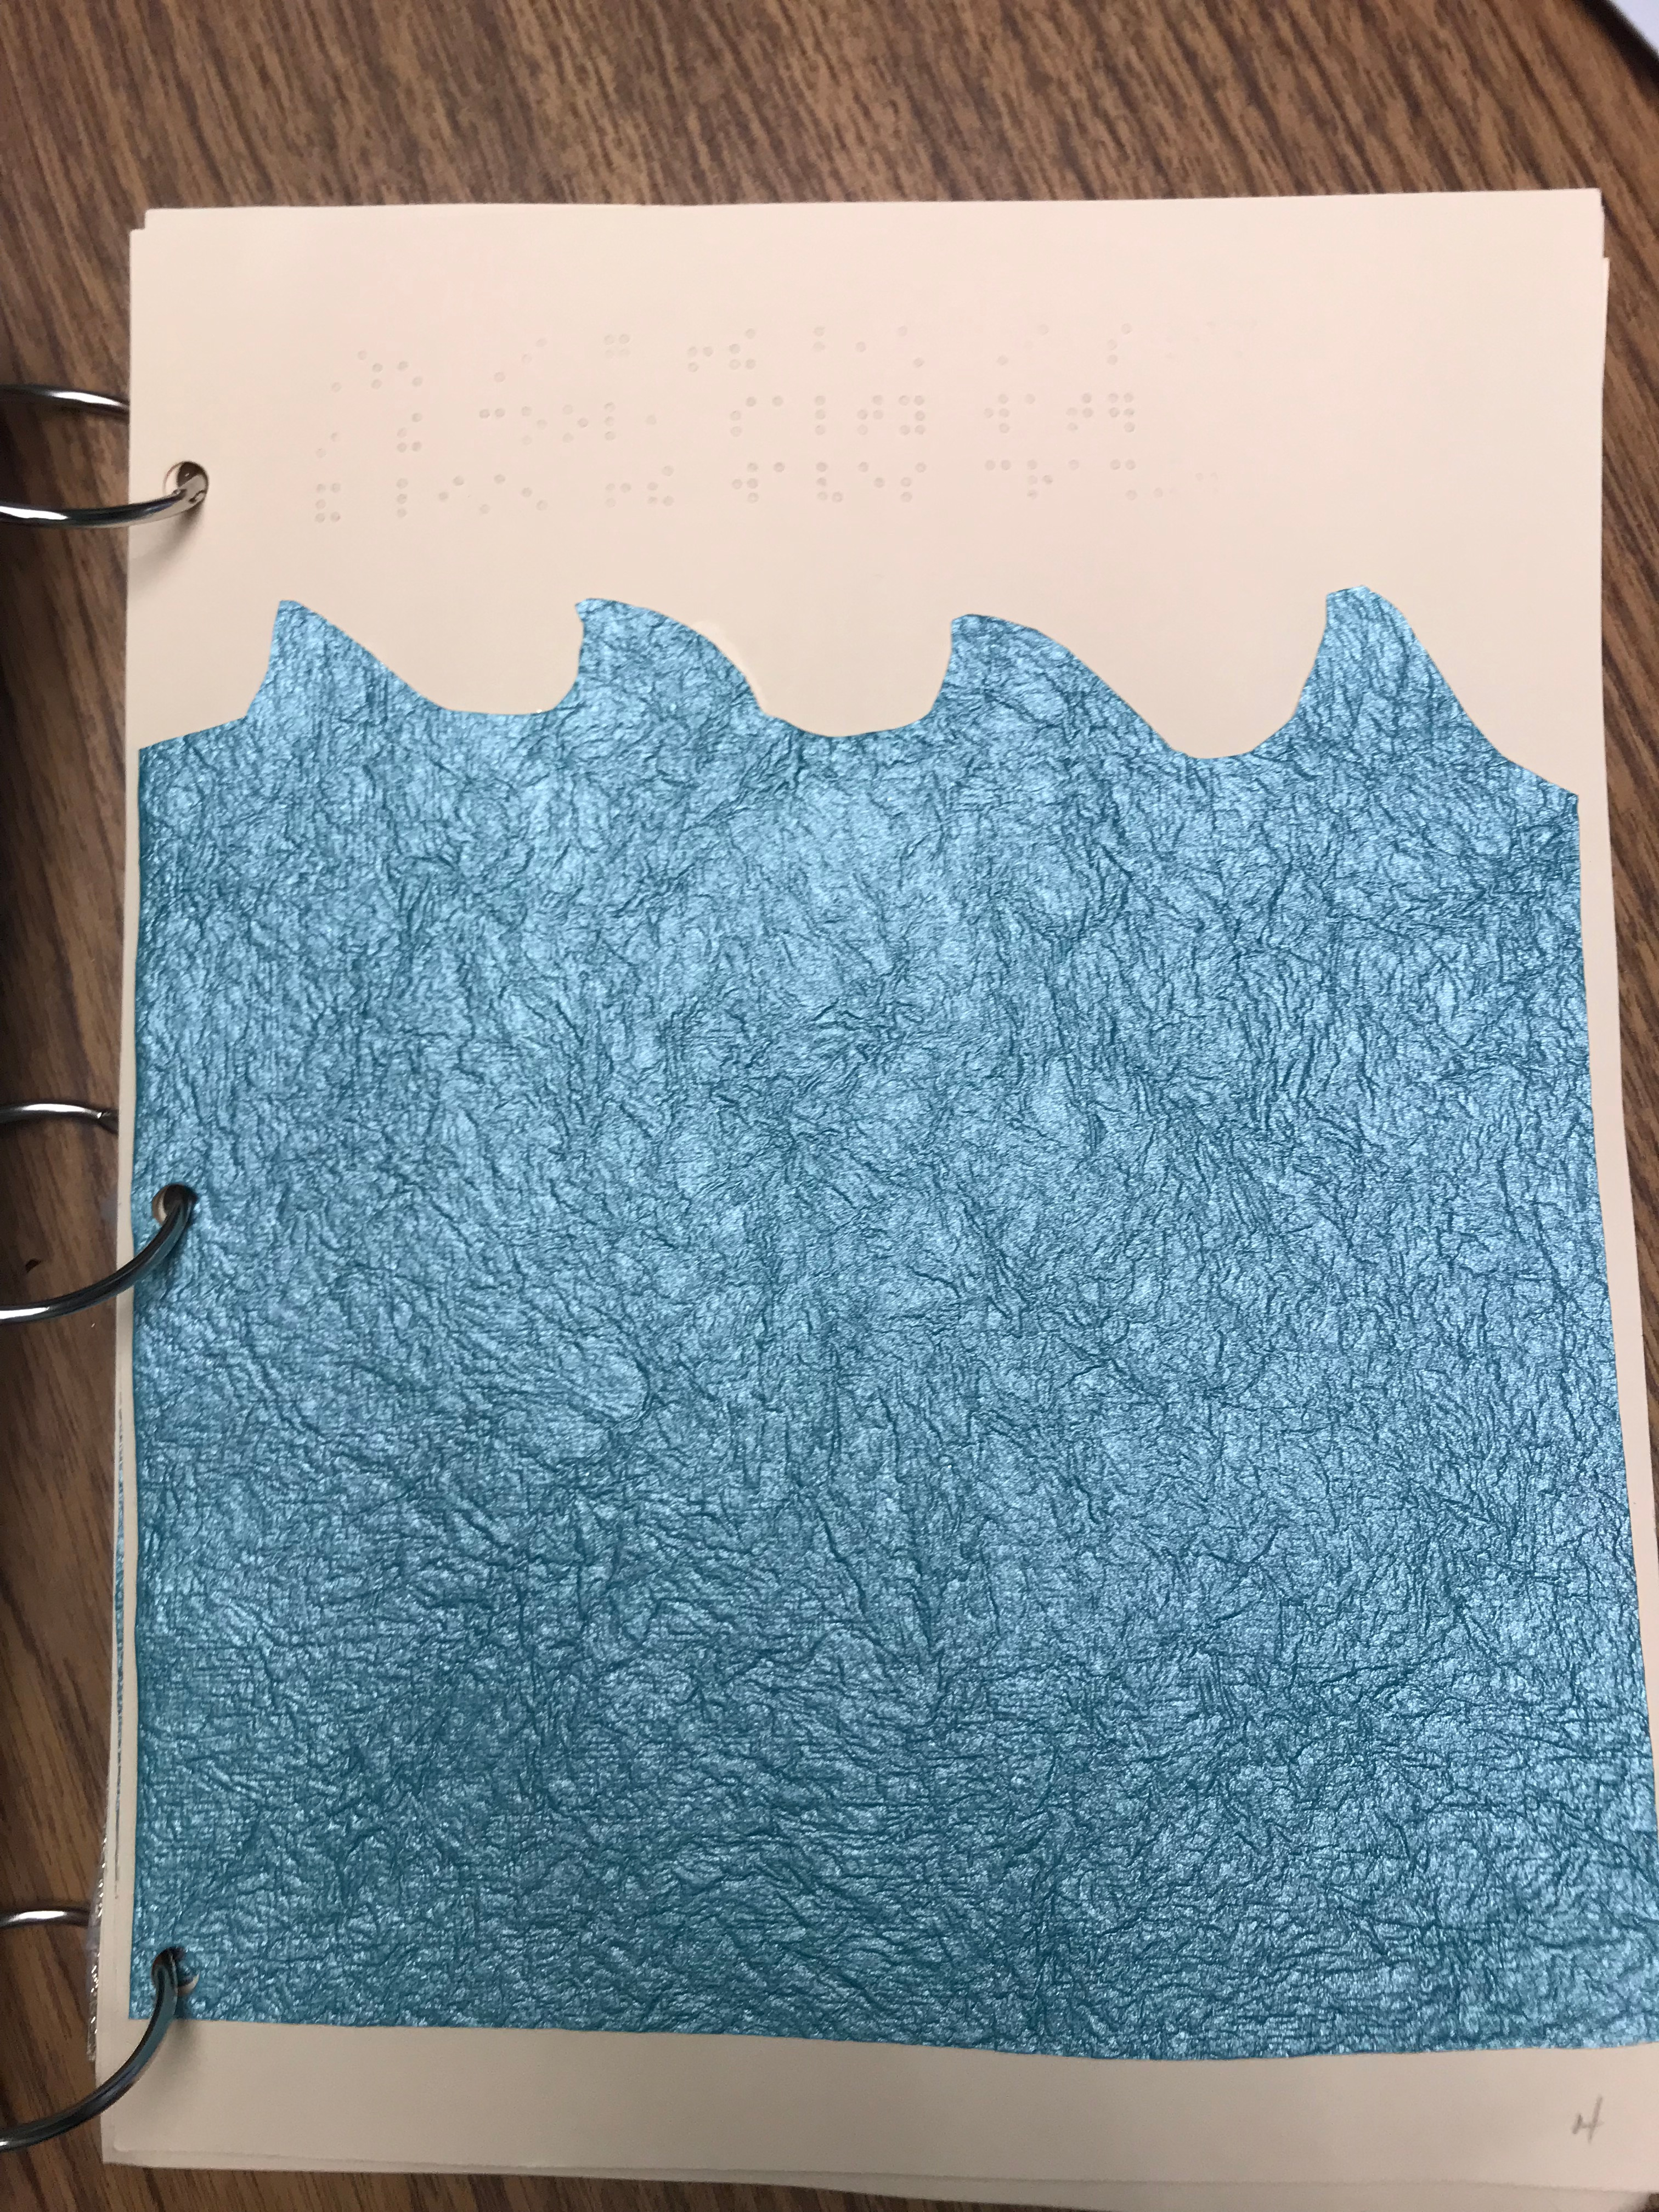 Blue wrinkled textured paper cut into waves